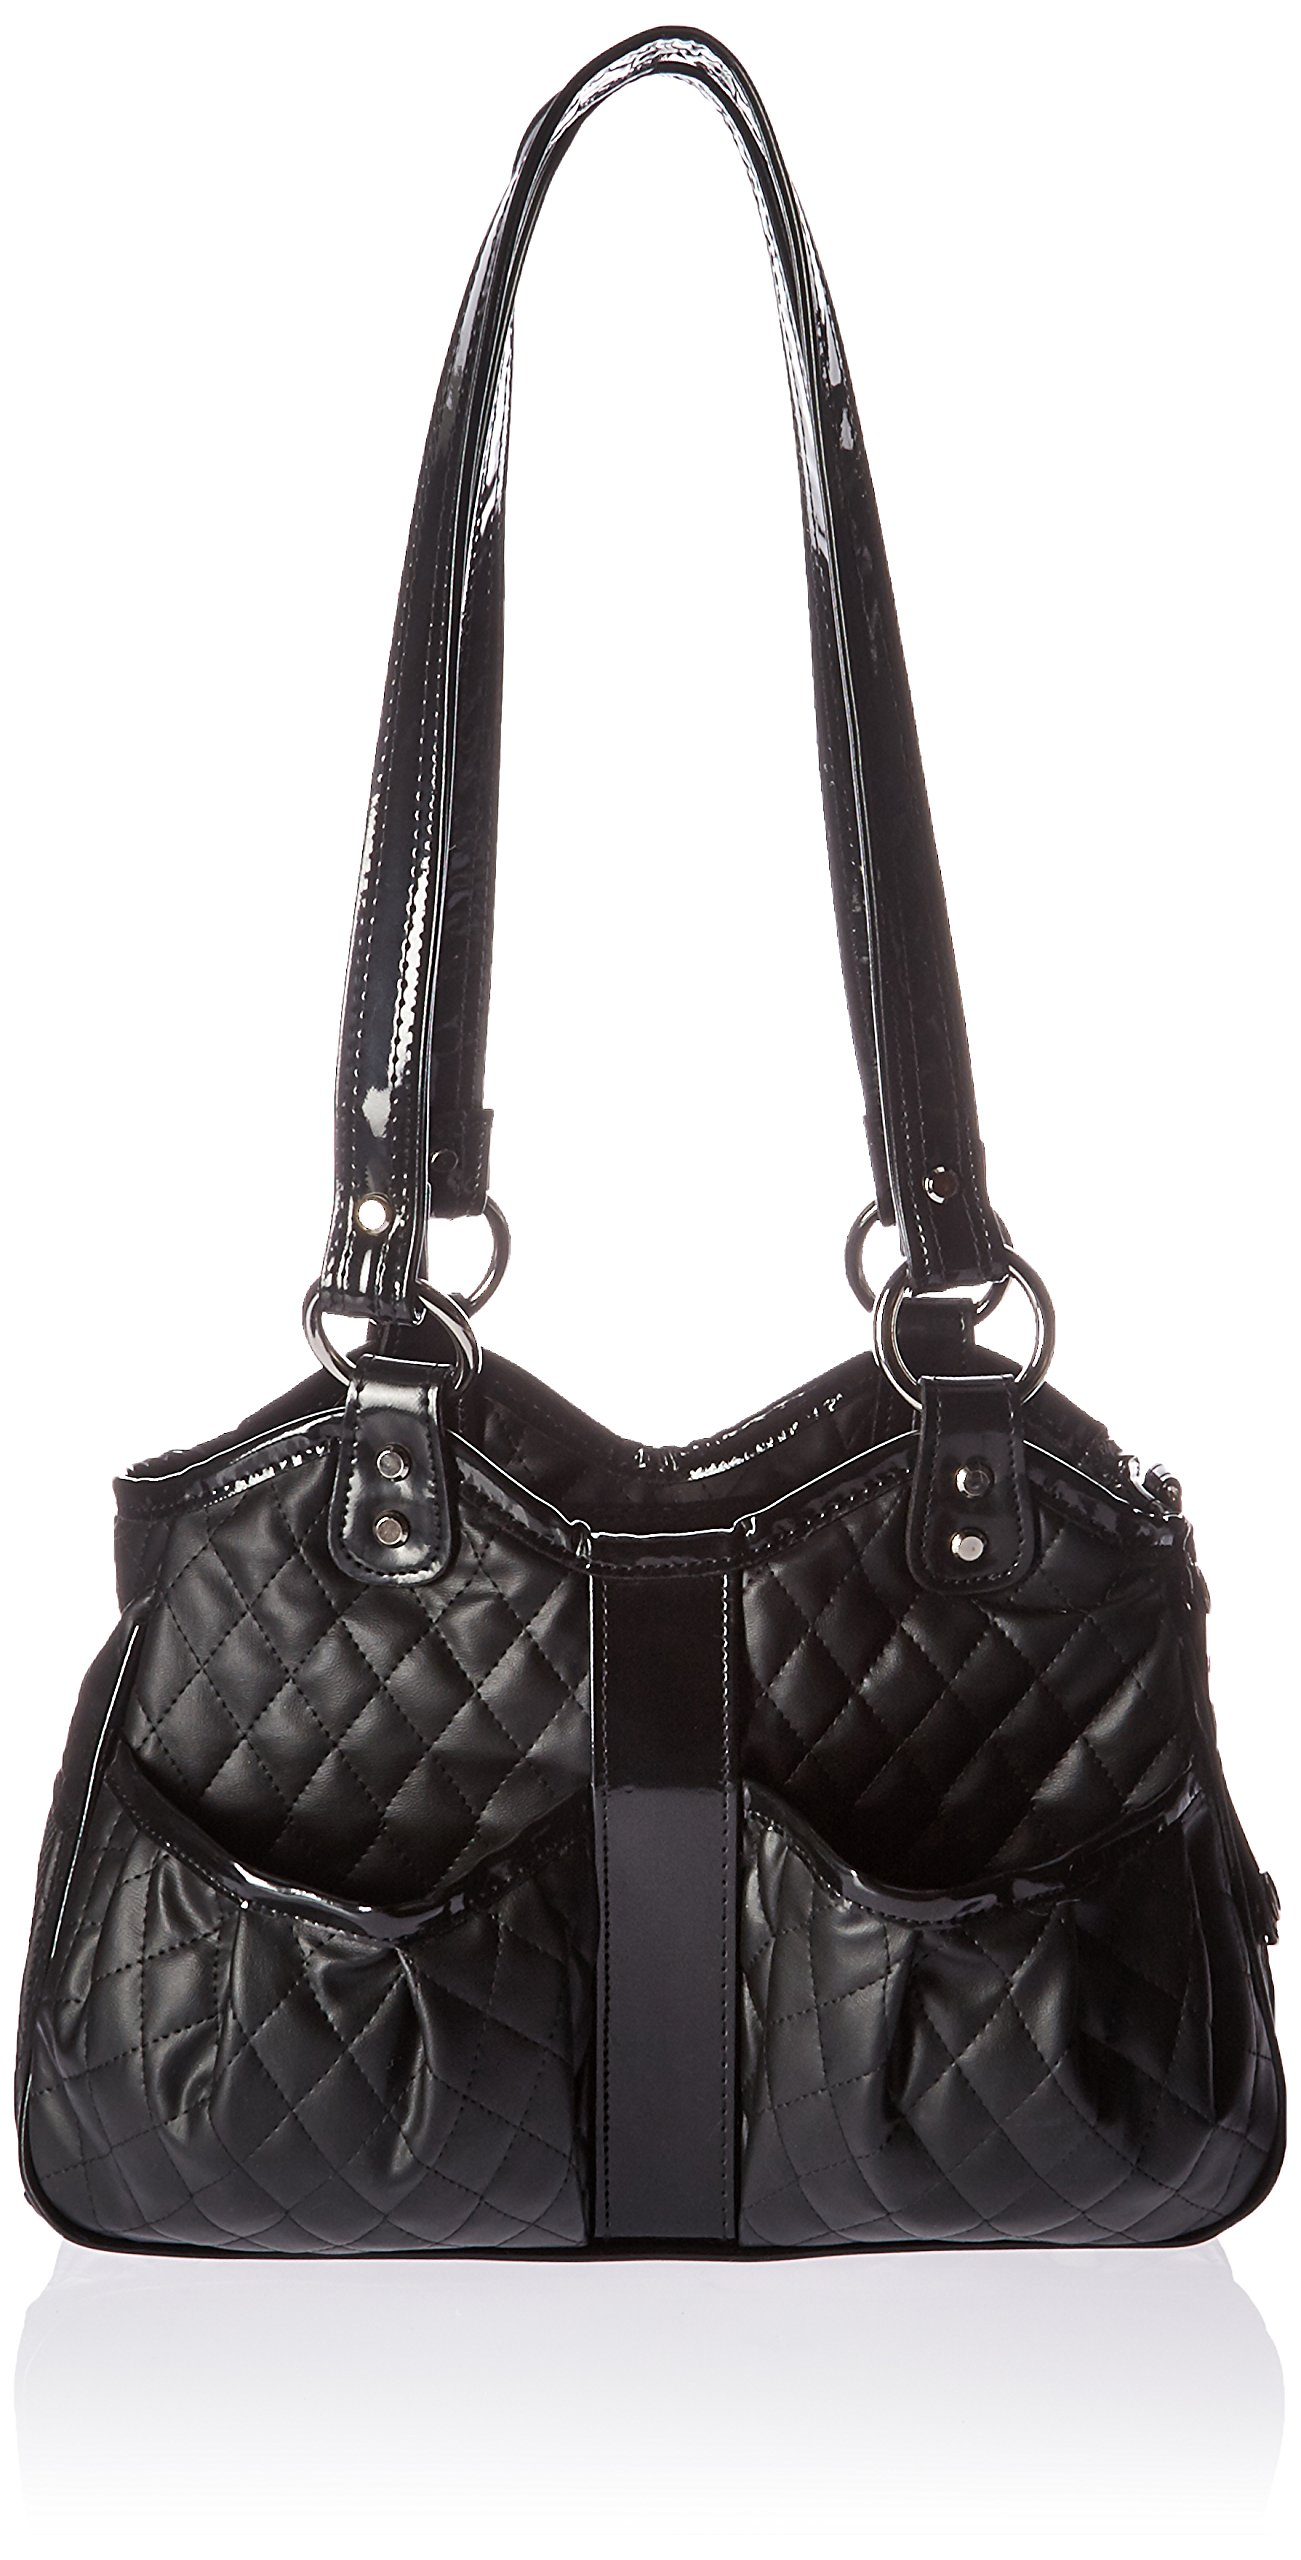 Petote Metro Quilted Luxe Pet Carrier, Petite, Black by Petote (Image #1)